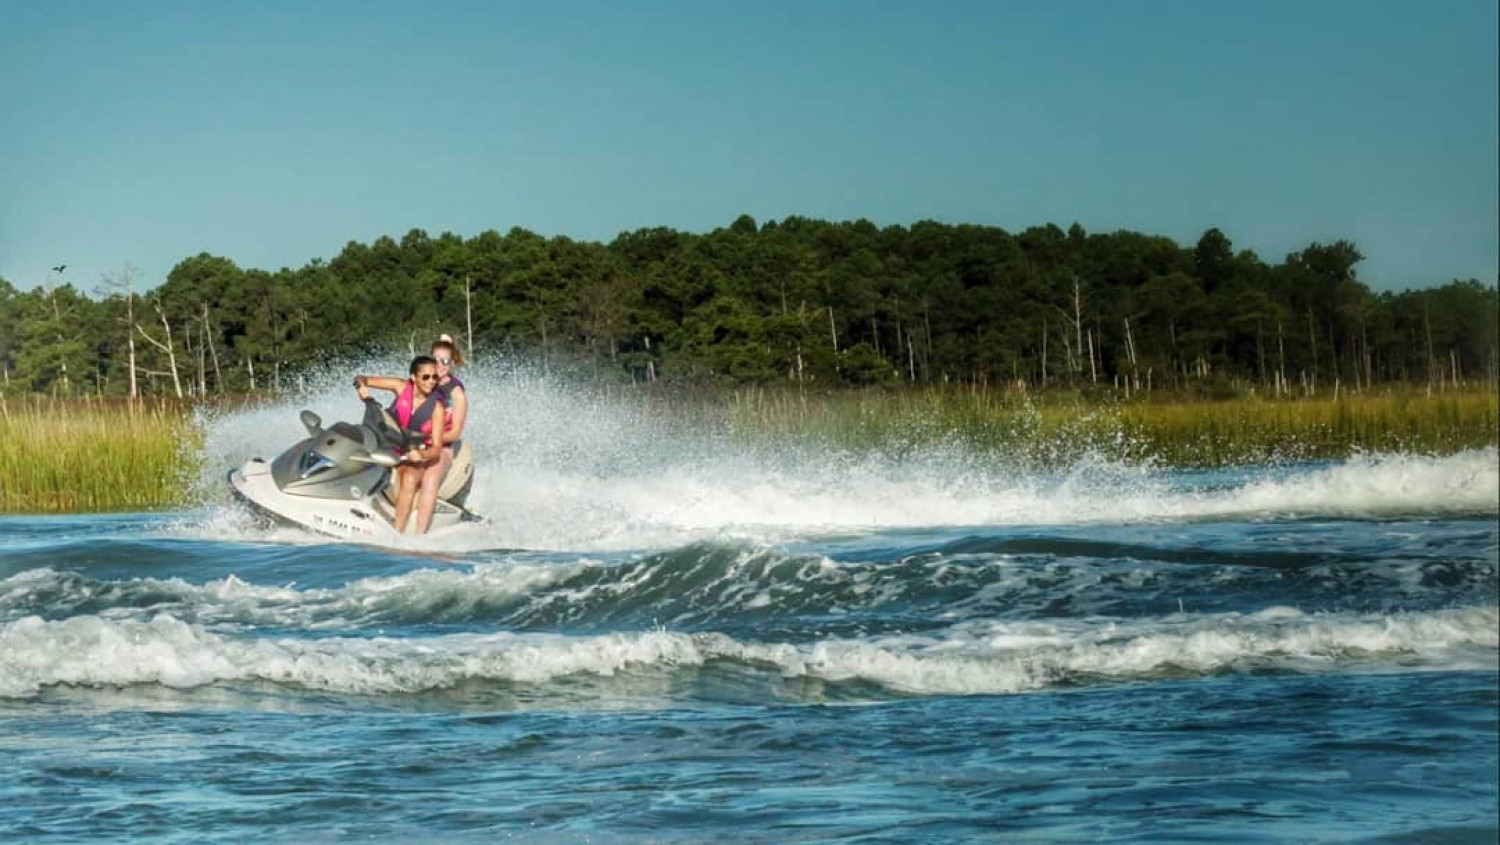 Jet Ski rental near Yorktown Beach